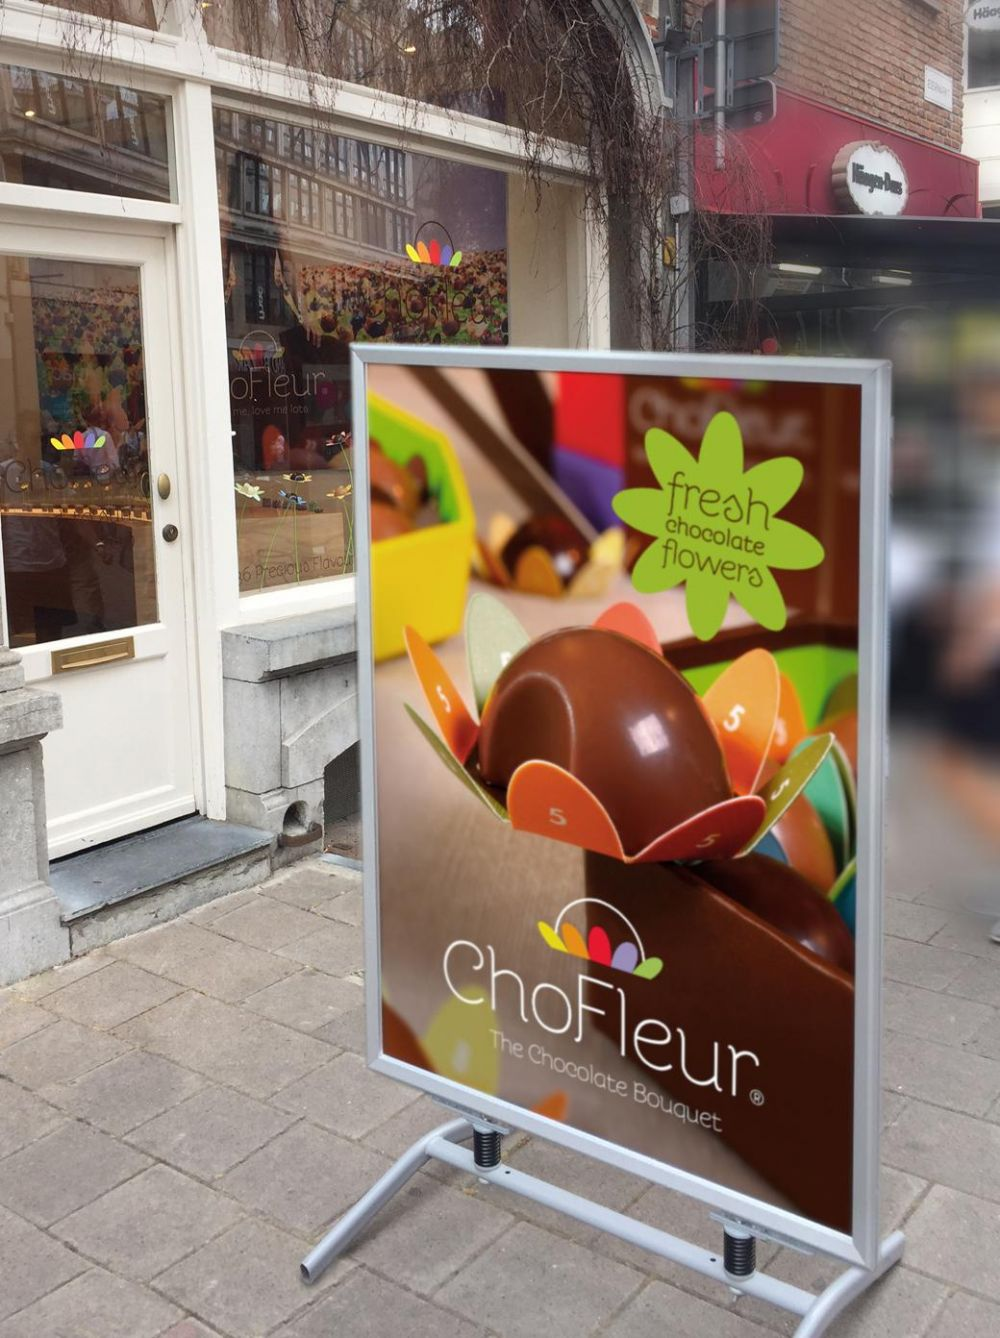 ChoFleur - Flavours to melt for - Pavement signs